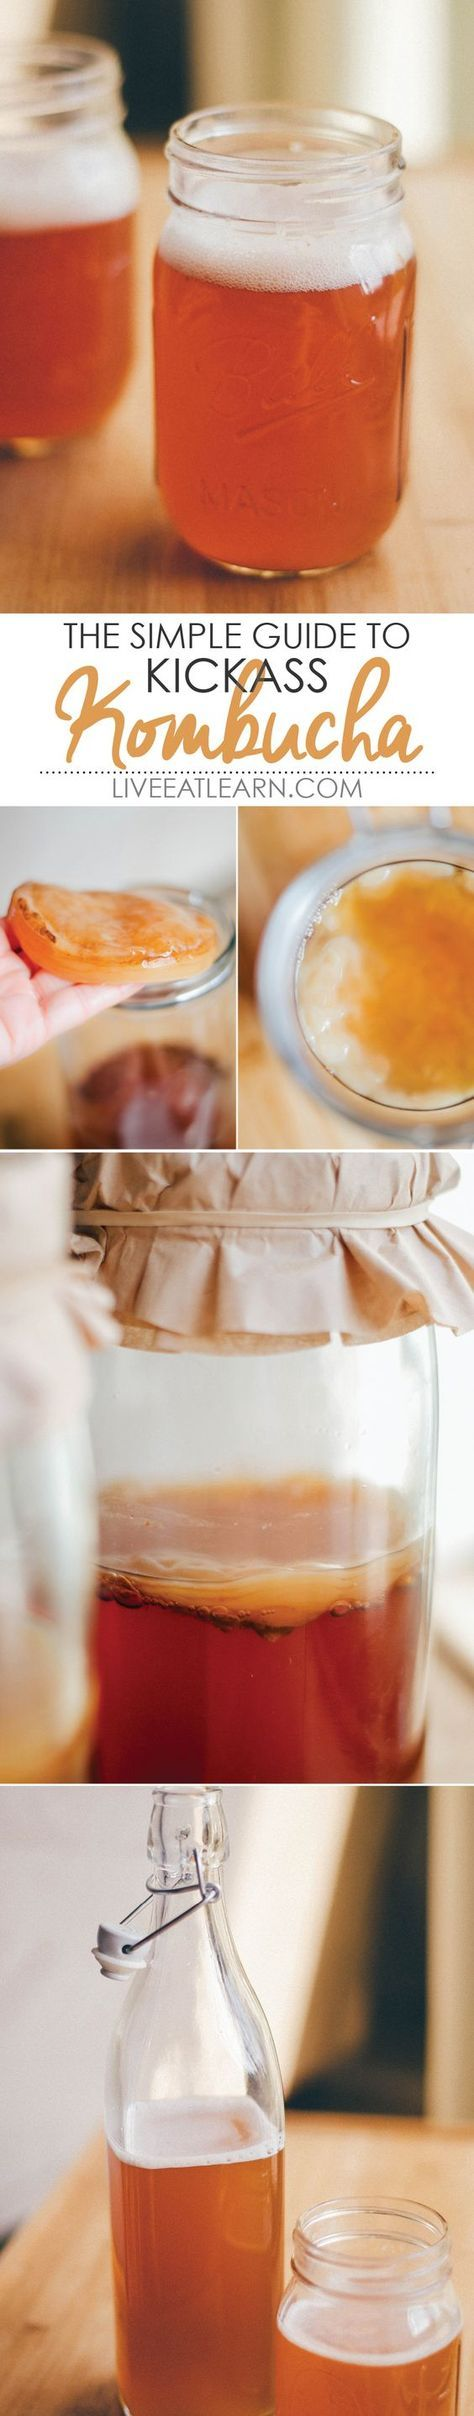 A complete guide on how to make kombucha, all the way from the SCOBY to the fruity fermenting flavors! You just need tea, sugar, and a bottle of store-bought kombucha to get started. Homemade kombucha is such and easy, healthy, and delicious drink to make. Here's how to do it! via @liveeatlearn